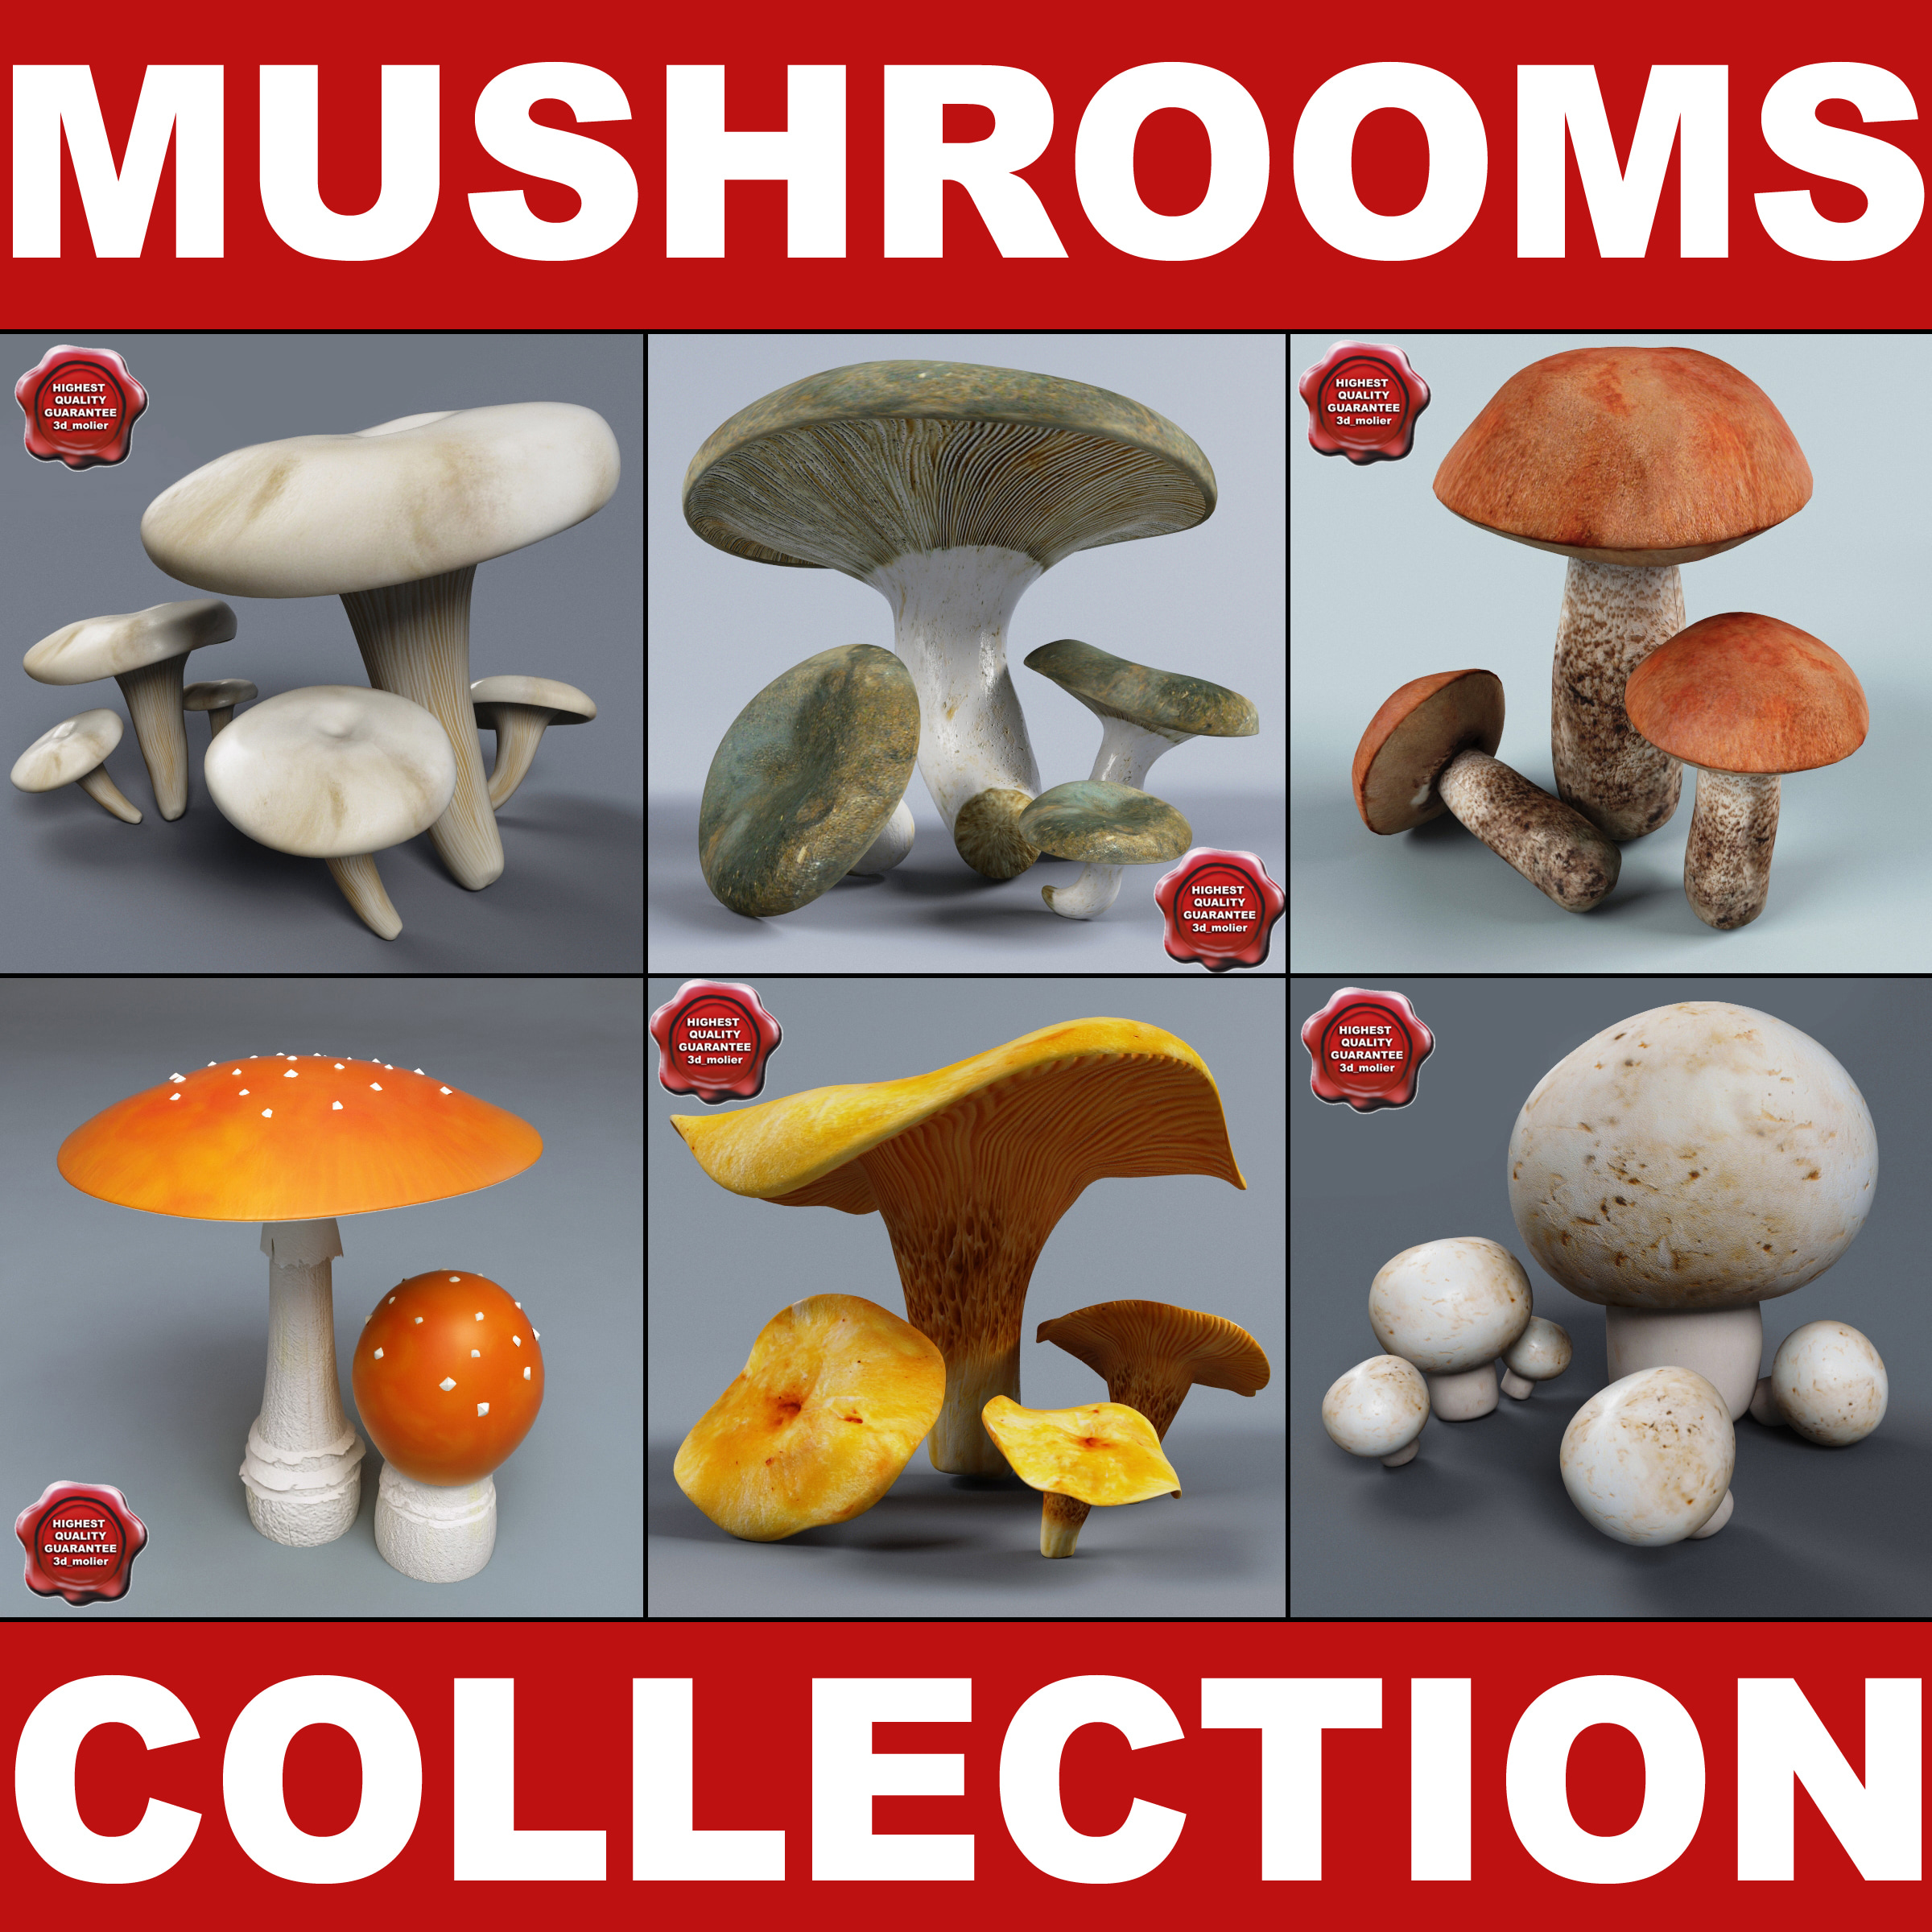 Mushrooms_Collection_00.jpg